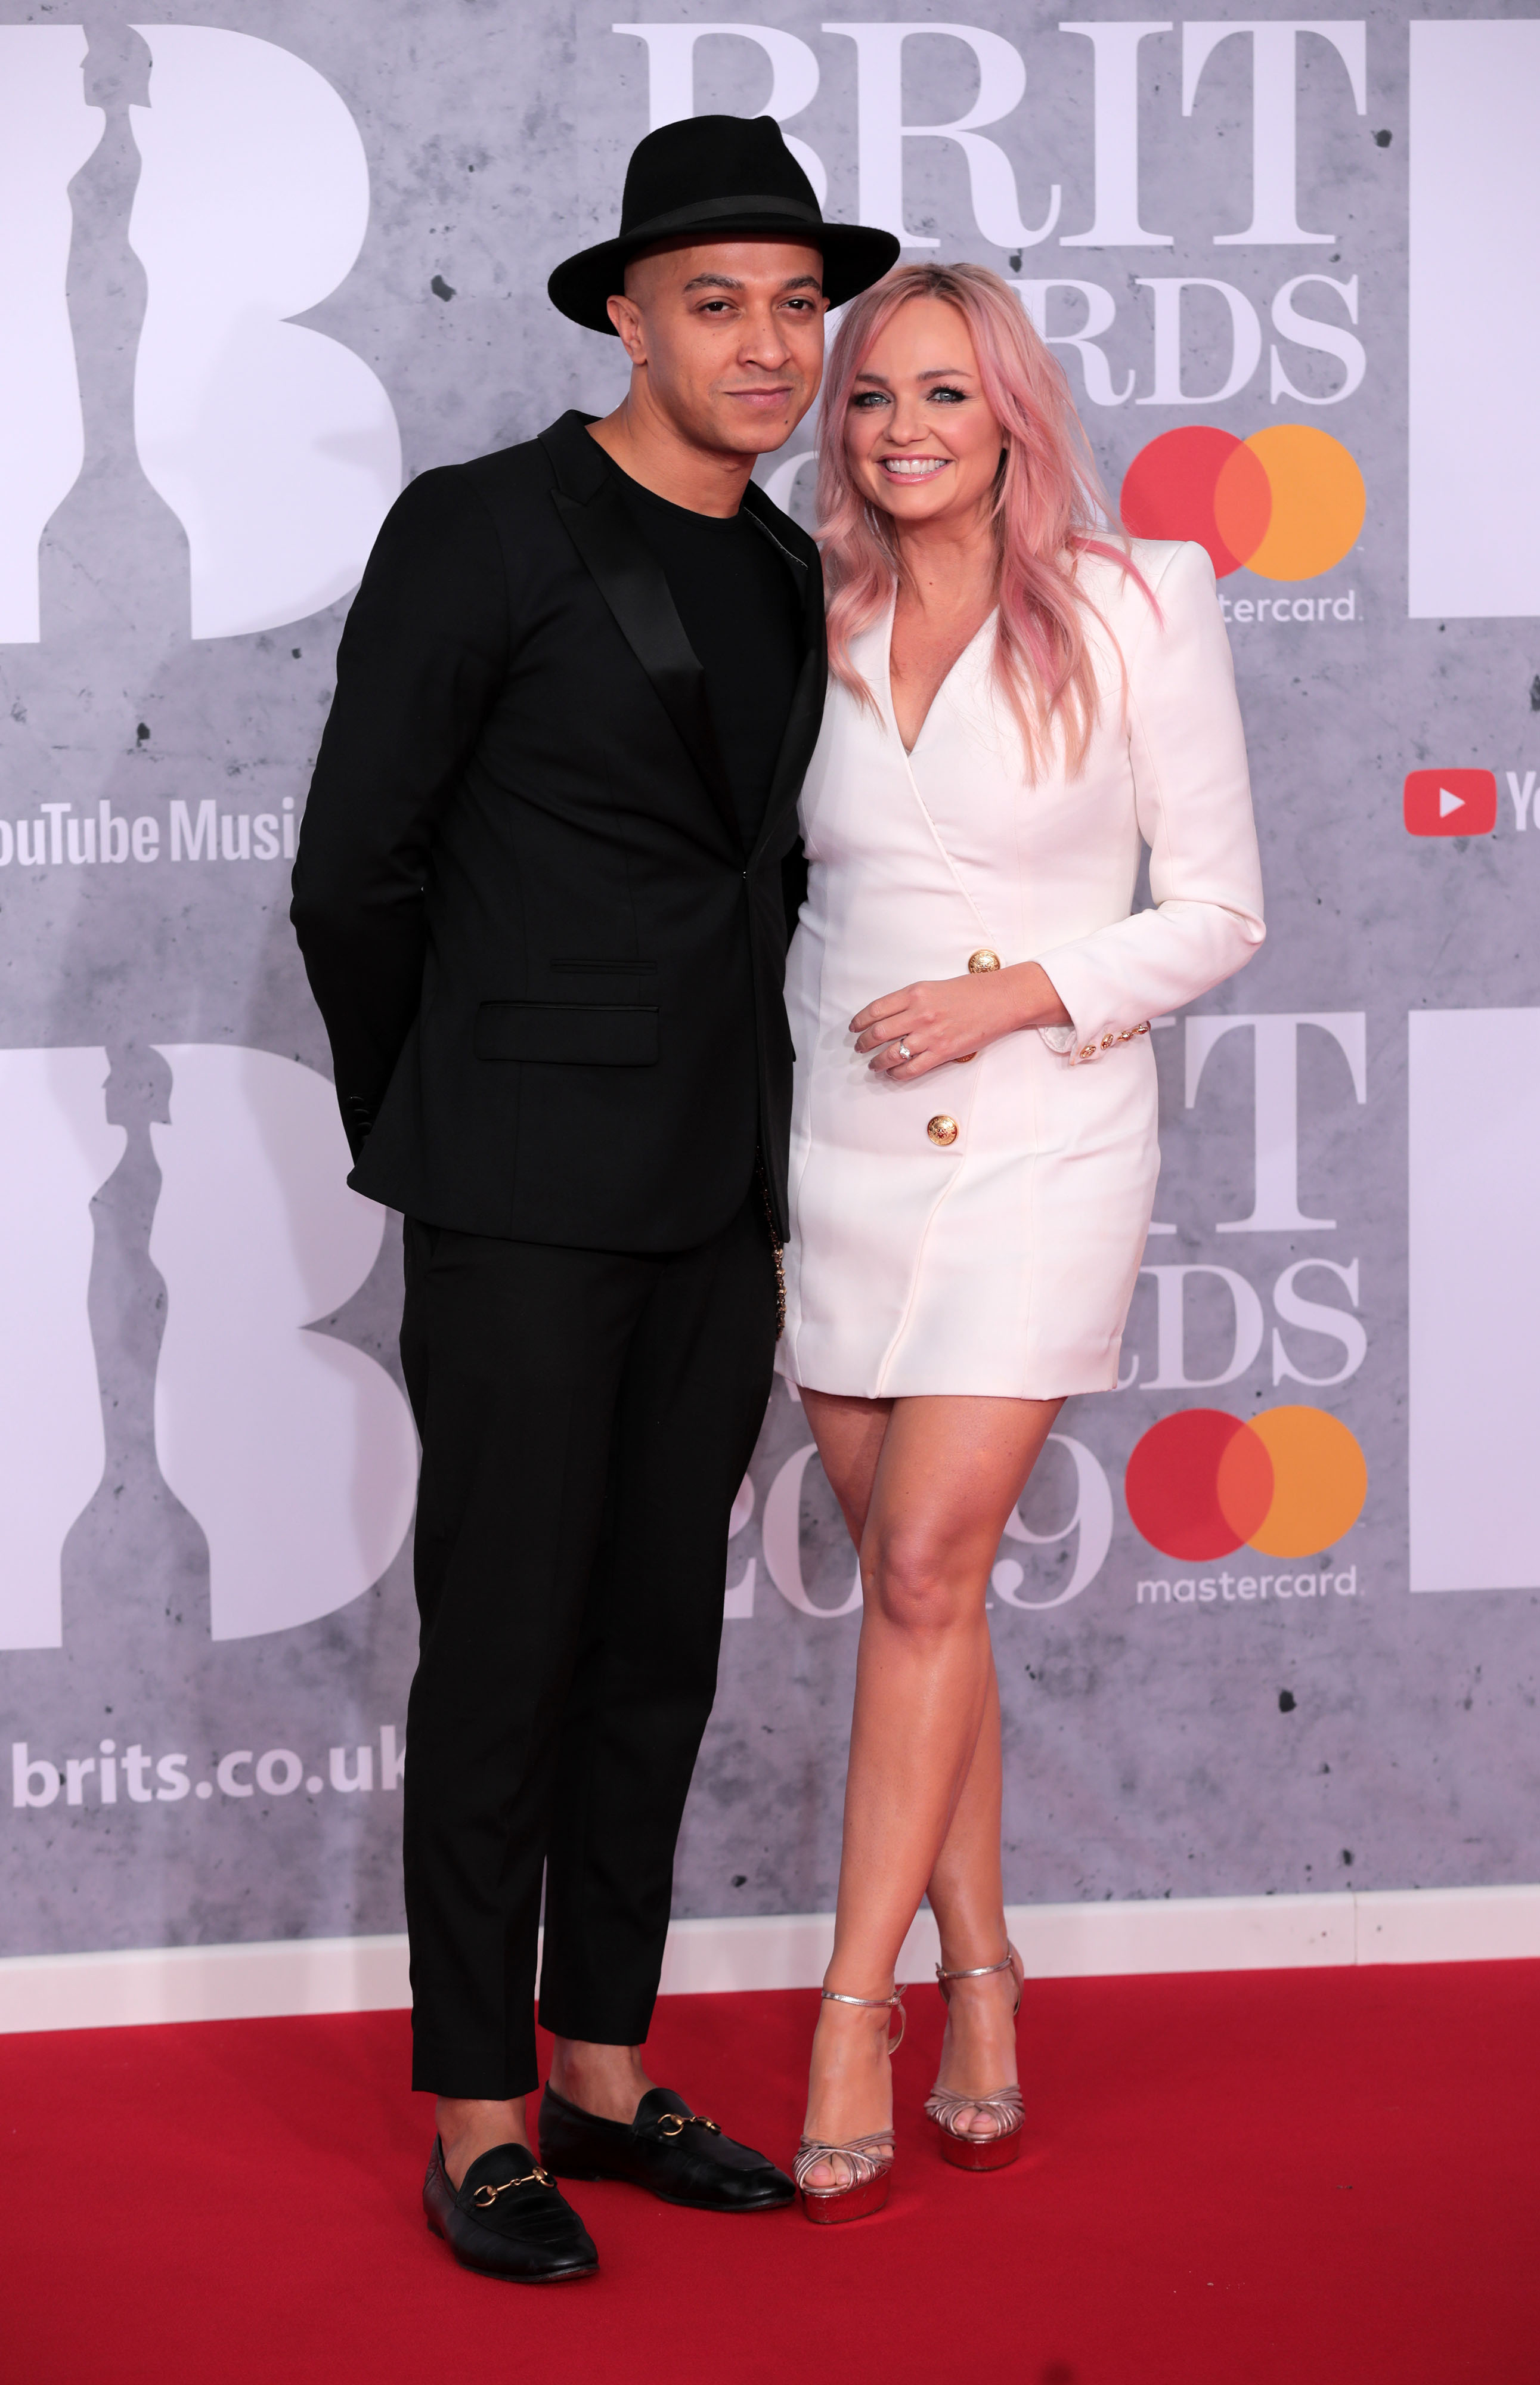 39th Brit Awards, Arrivals, The O2 Arena, London, UK Pictured: Jade Jones,Emma Bunton,Luke Evans Ref: SPL5066121 200219 NON-EXCLUSIVE Picture by: SplashNews.com Splash News and Pictures Los Angeles: 310-821-2666 New York: 212-619-2666 London: 0207 644 7656 Milan: 02 4399 8577 photodesk@splashnews.com World Rights